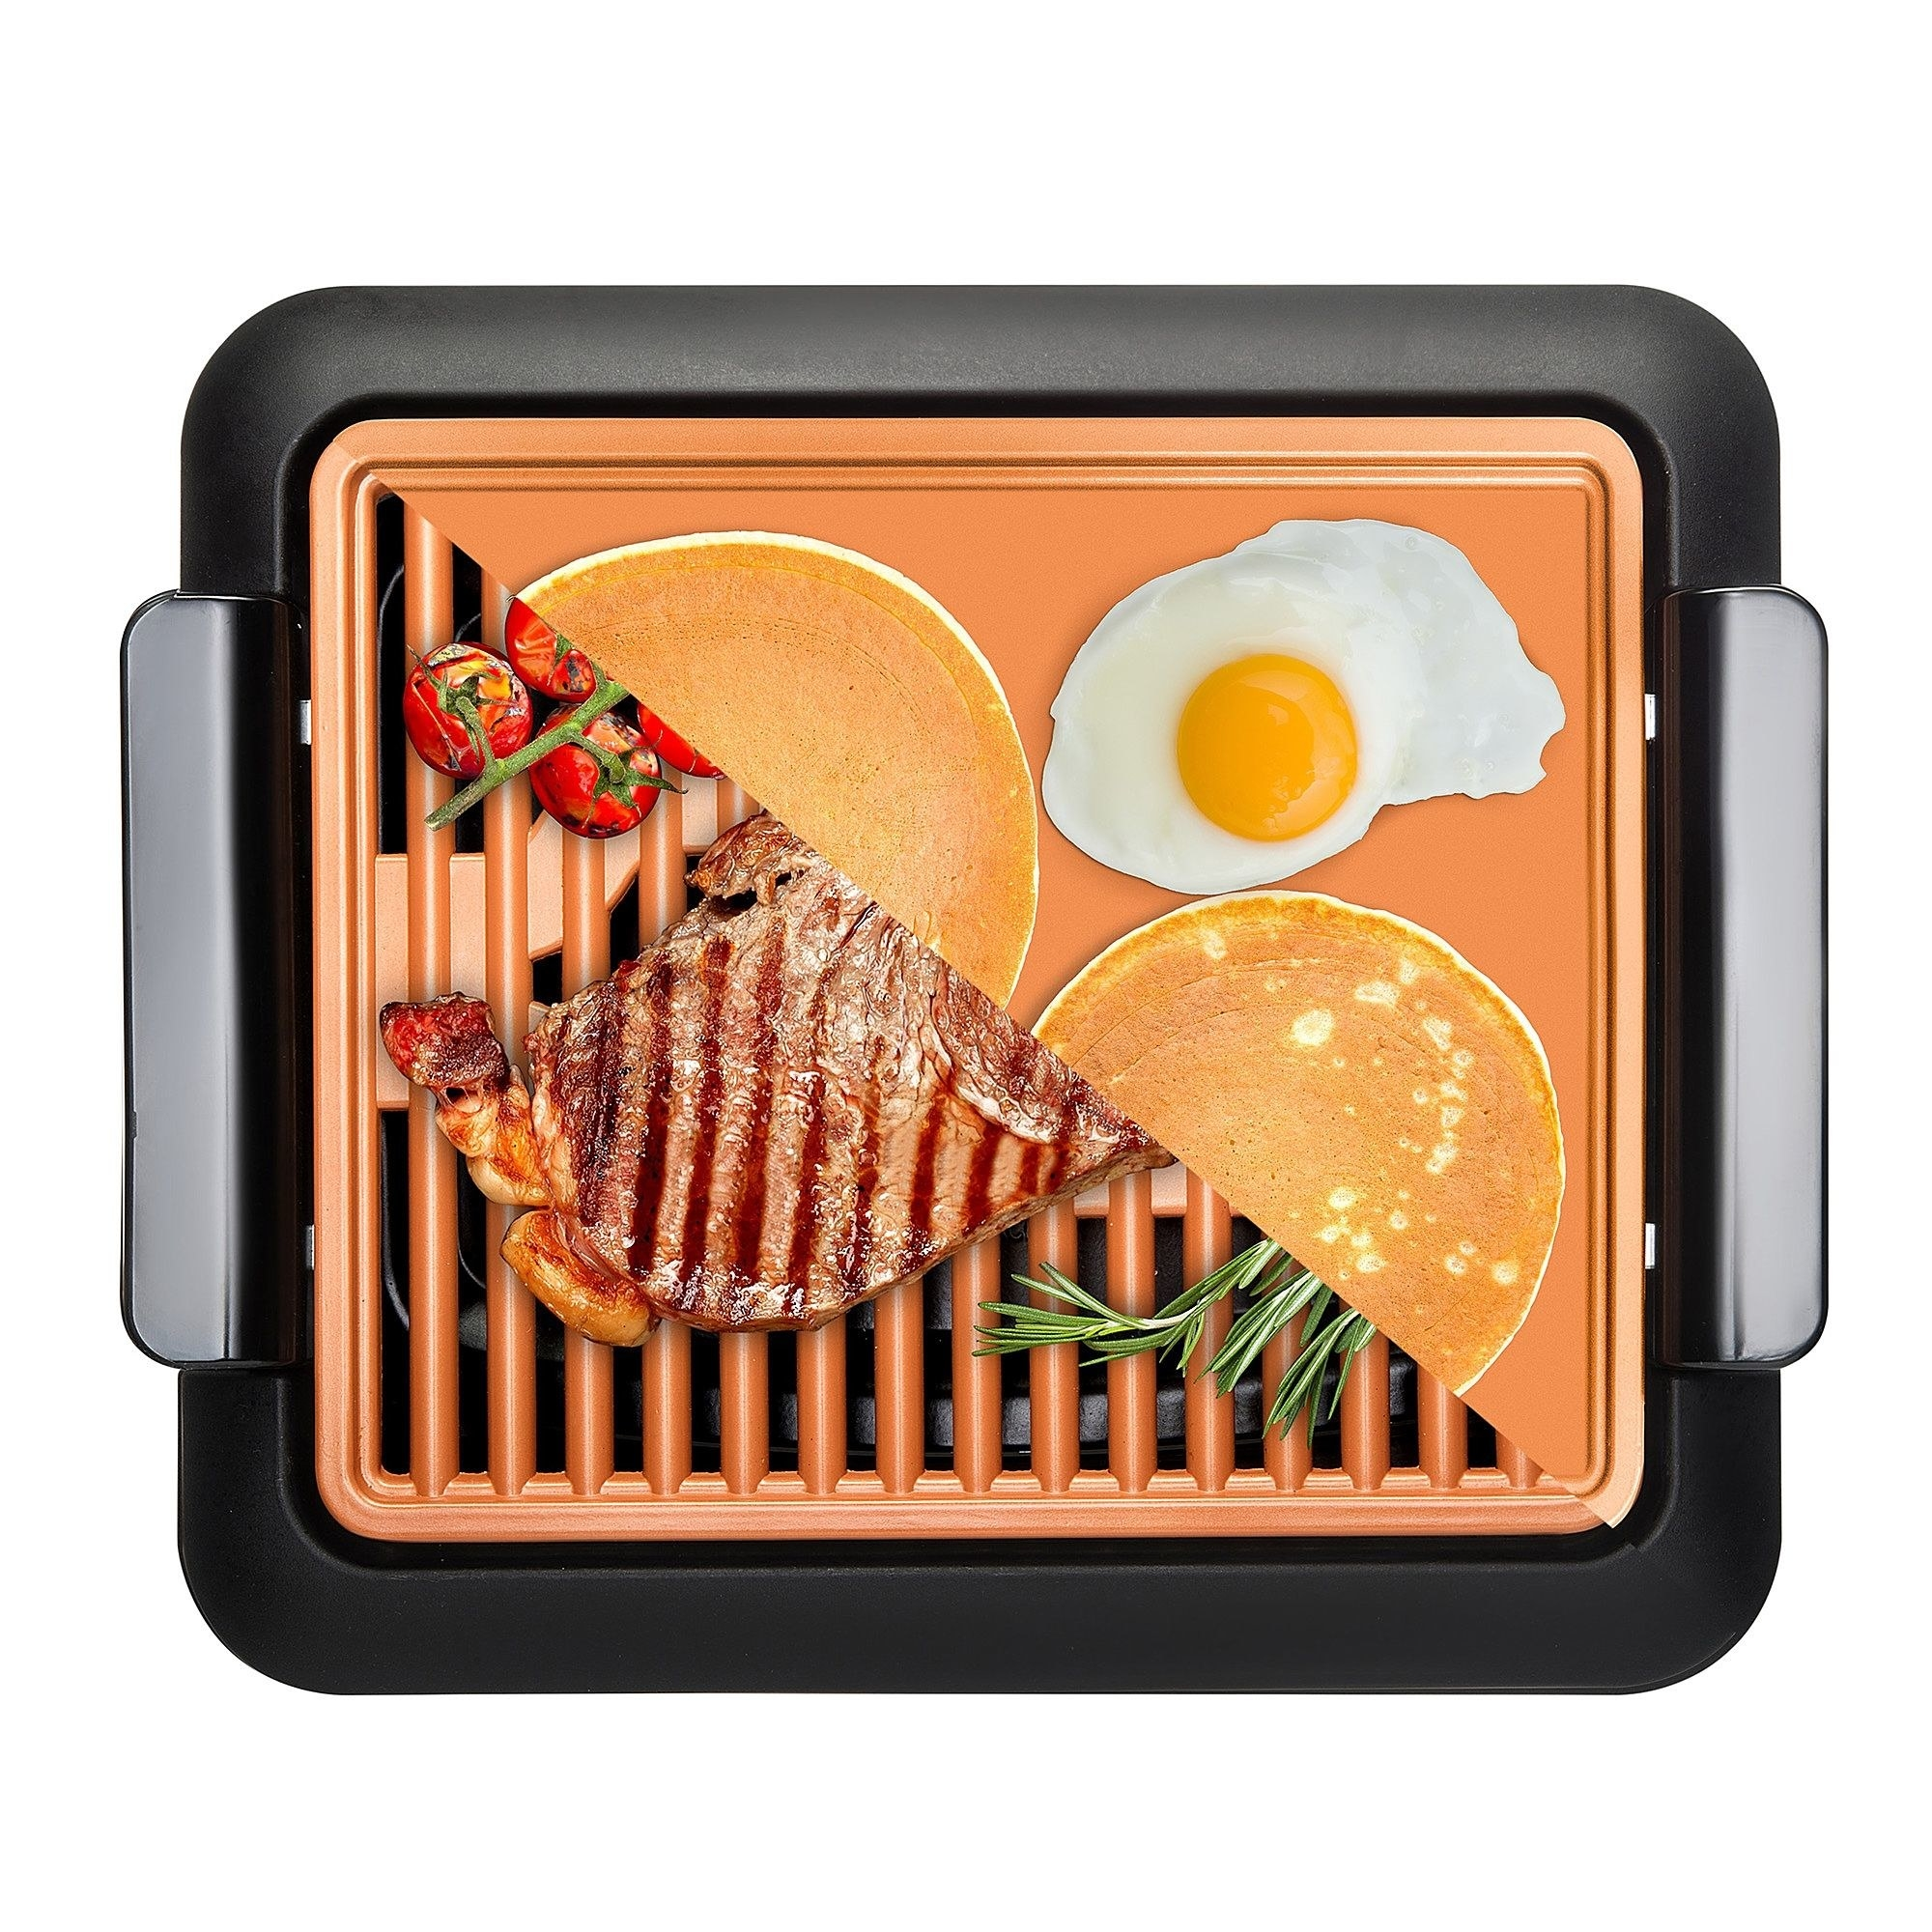 an electric grill with an orange grill pan in the middle